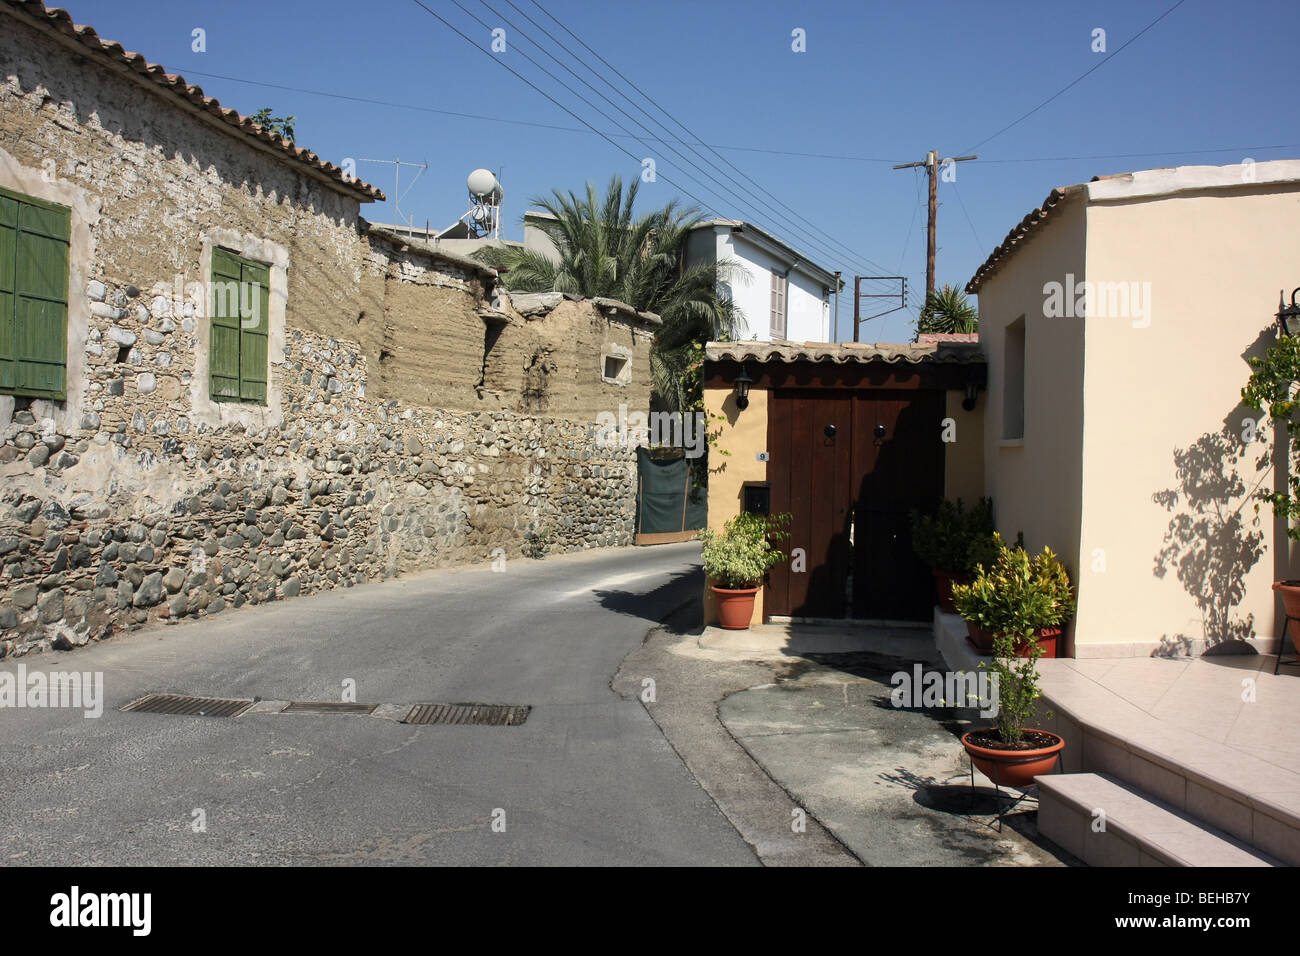 Street with houses in the small village of Pera, Cyprus. - Stock Image